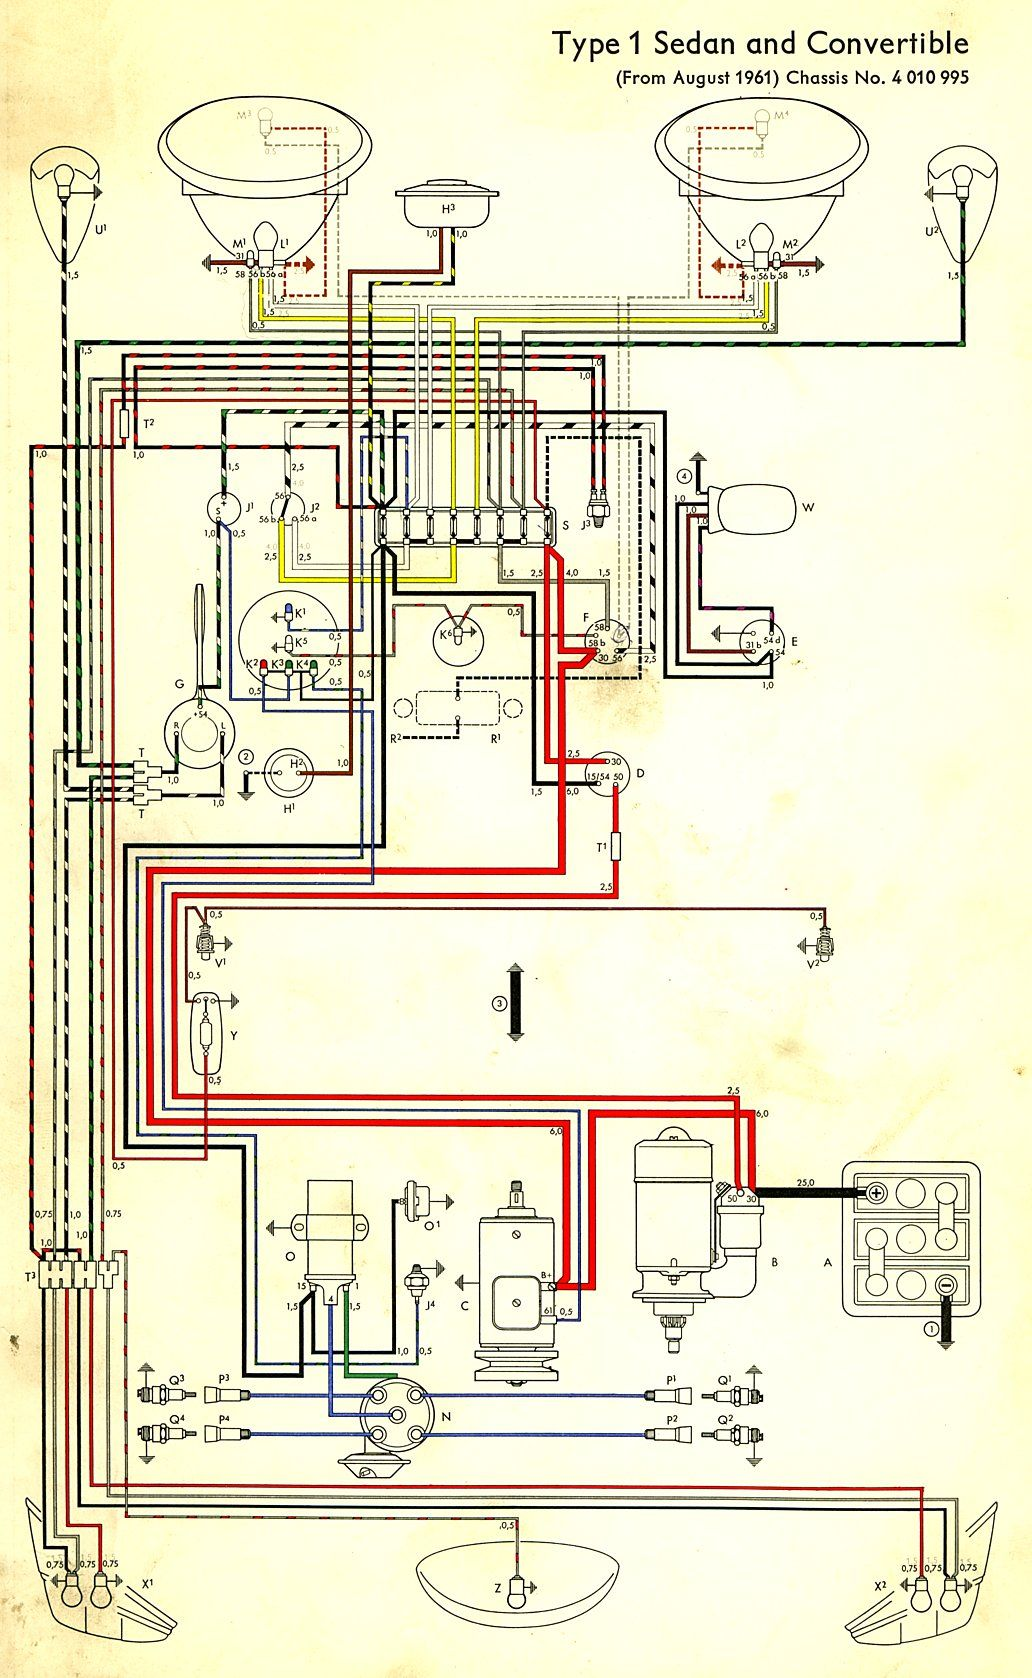 wiring diagram in color 1964 vw bug beetle convertible the samba wiring diagram for 1964 vw bus [ 1032 x 1678 Pixel ]